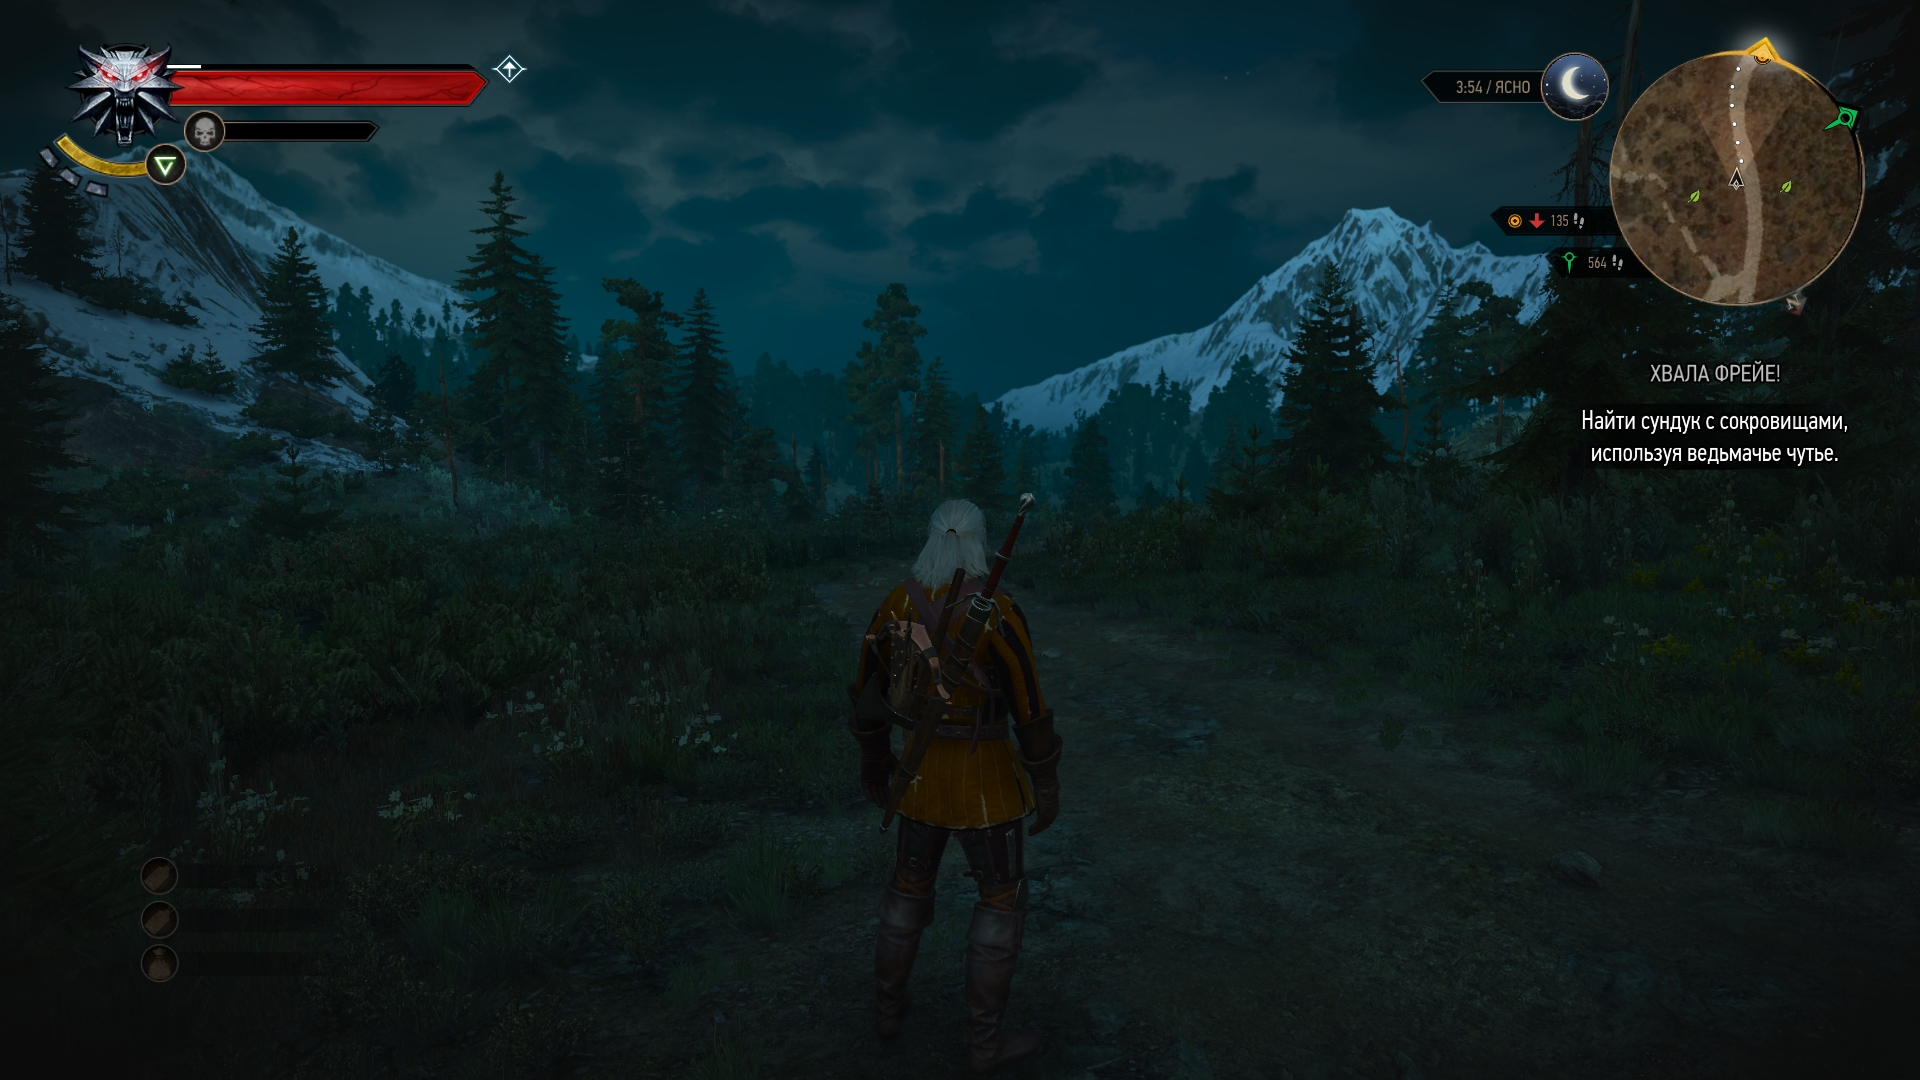 witcher3 2016-10-16 19-38-03-14.jpg - Witcher 3: Wild Hunt, the